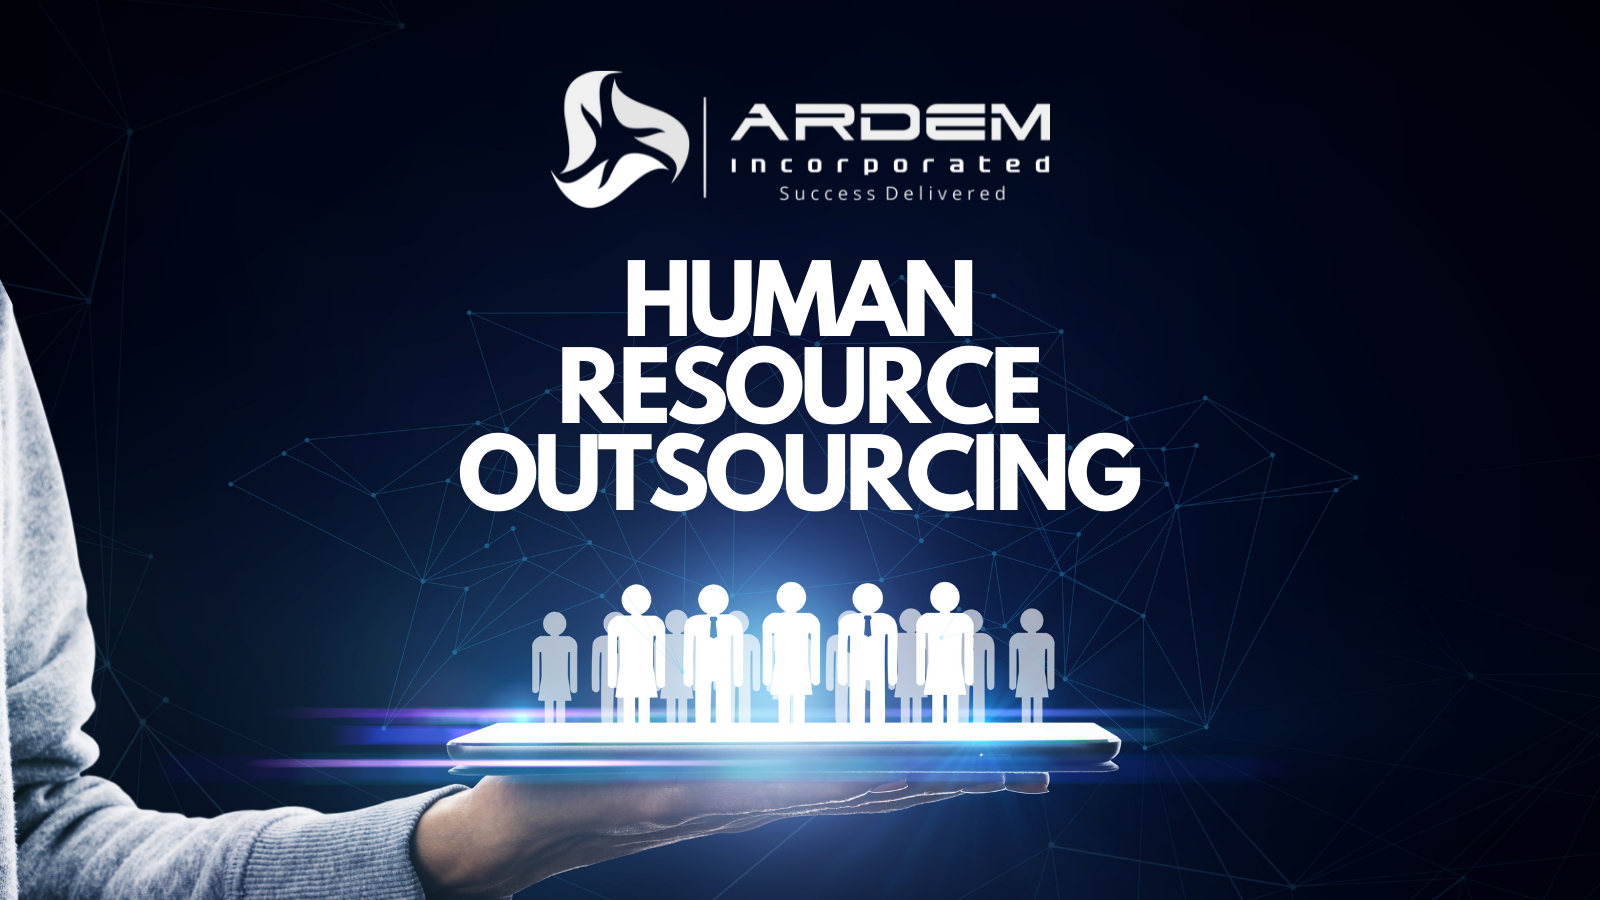 ARDEM HR OUTSOURCING